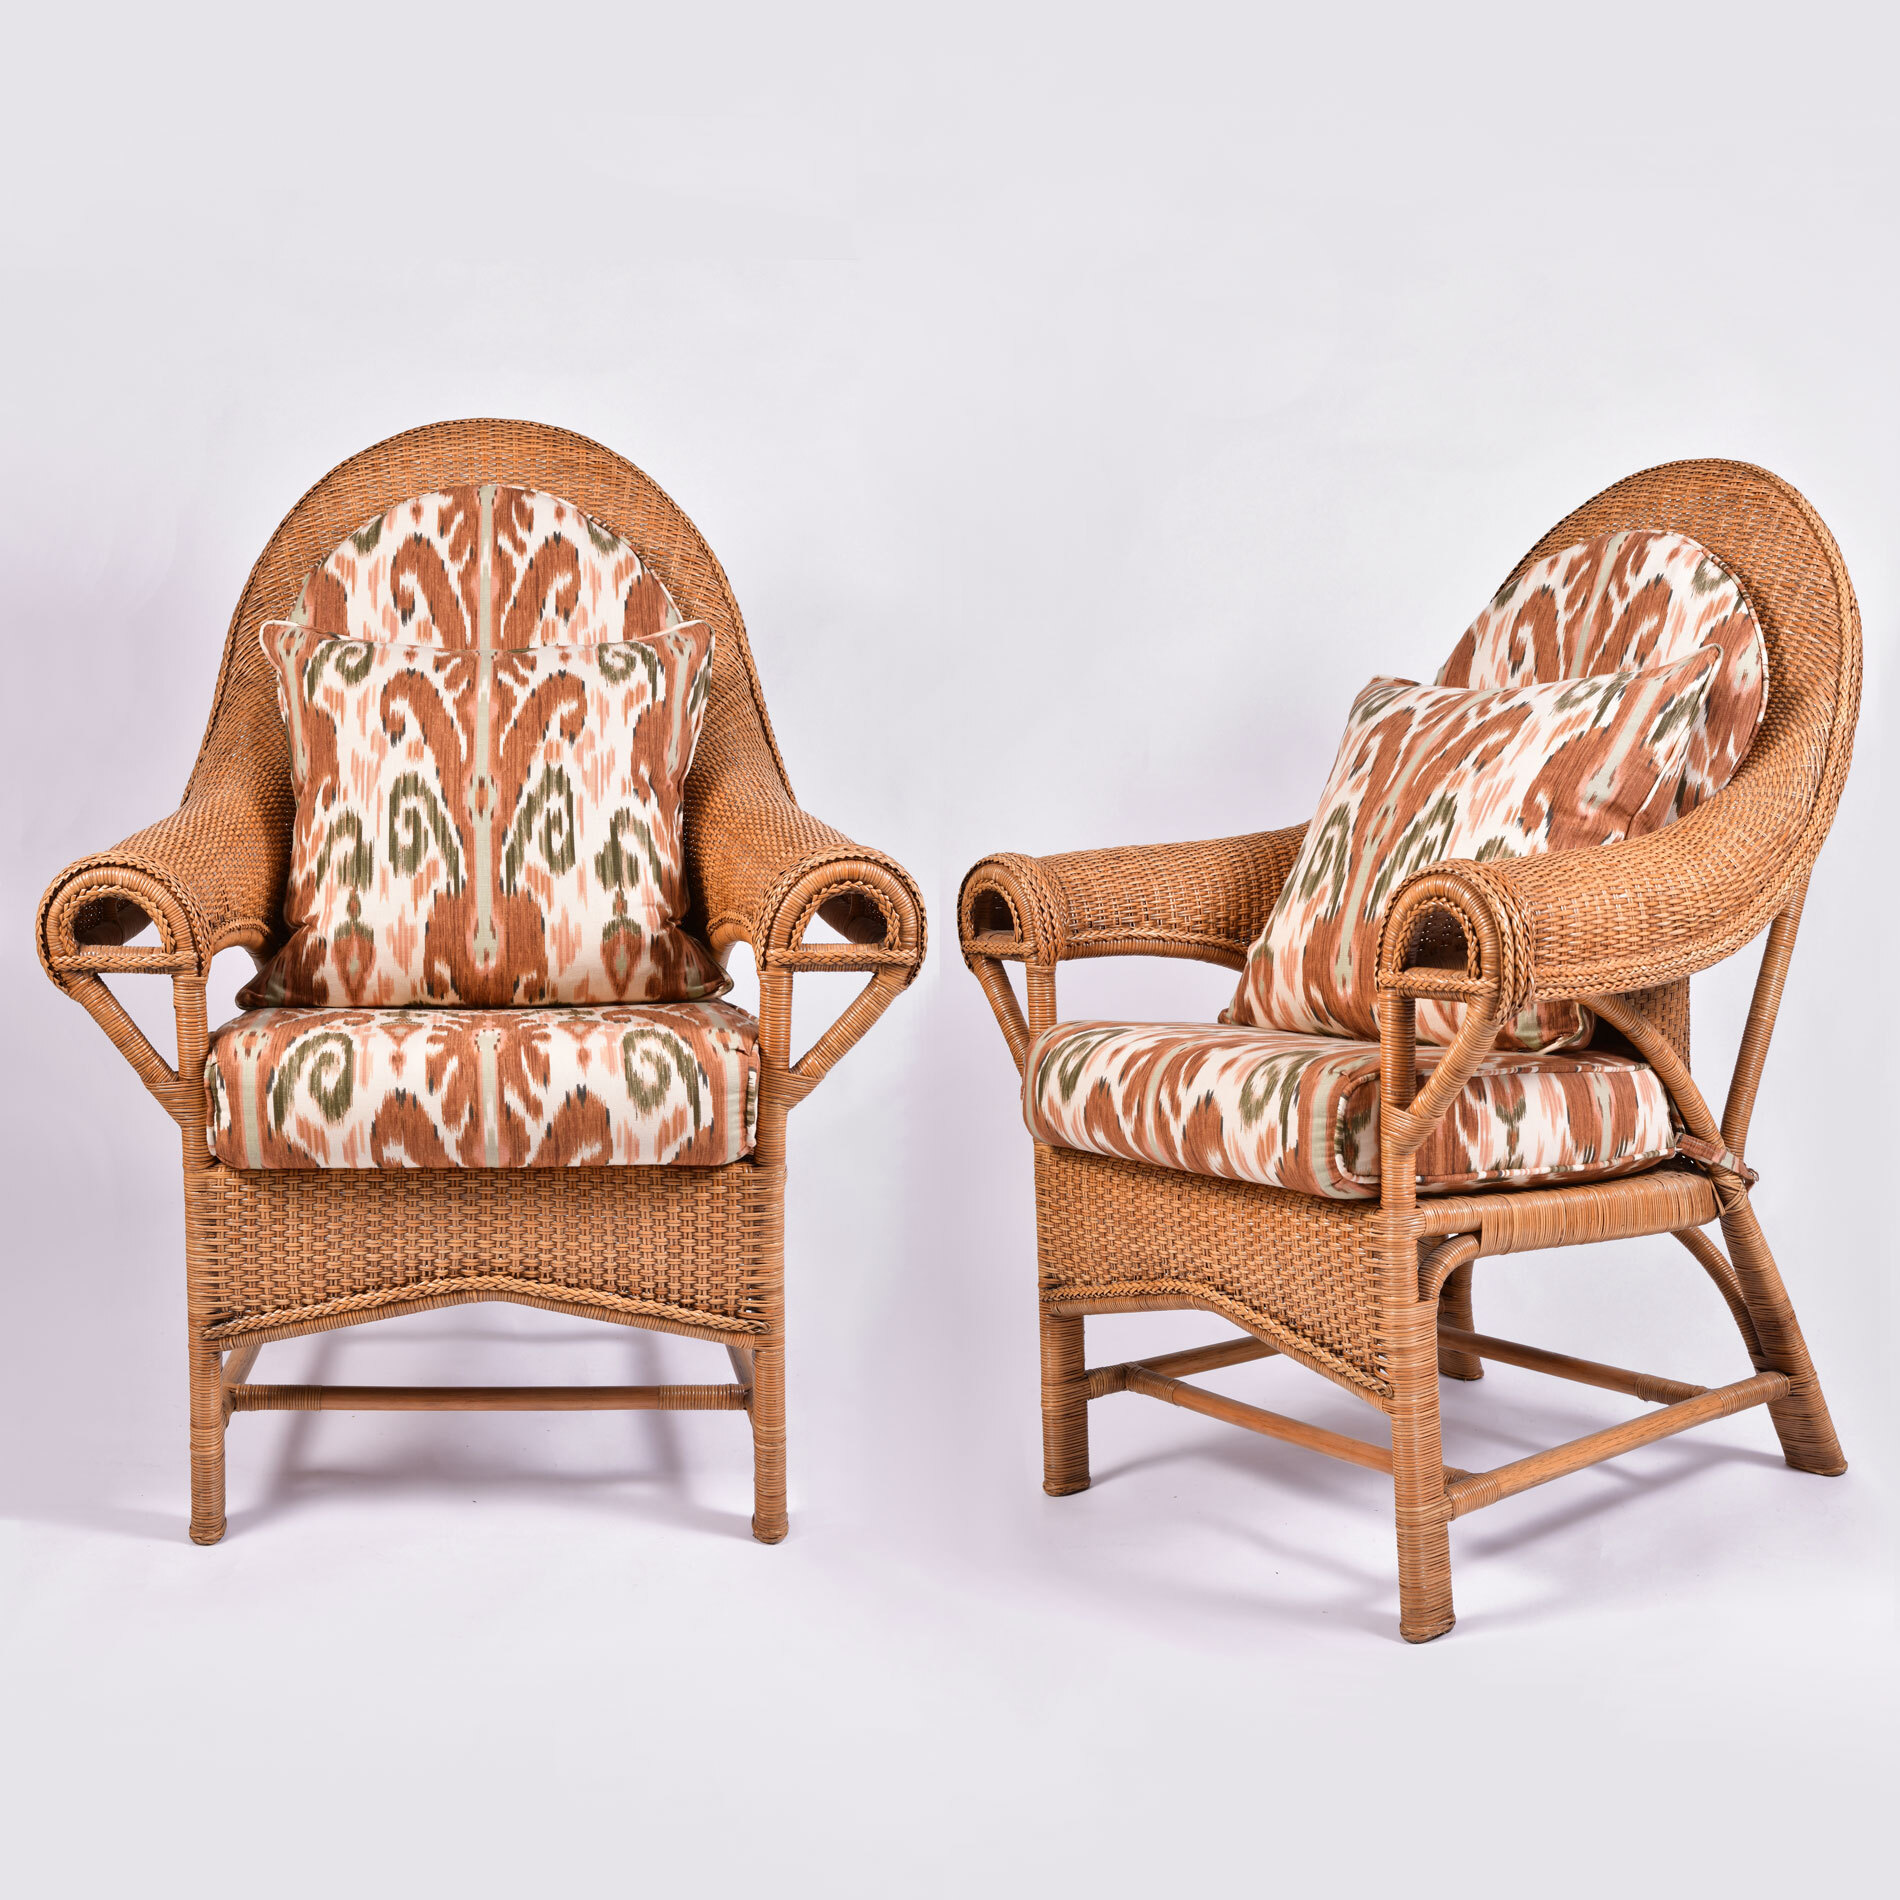 The image for Pair Us Wicker Armchairs 01